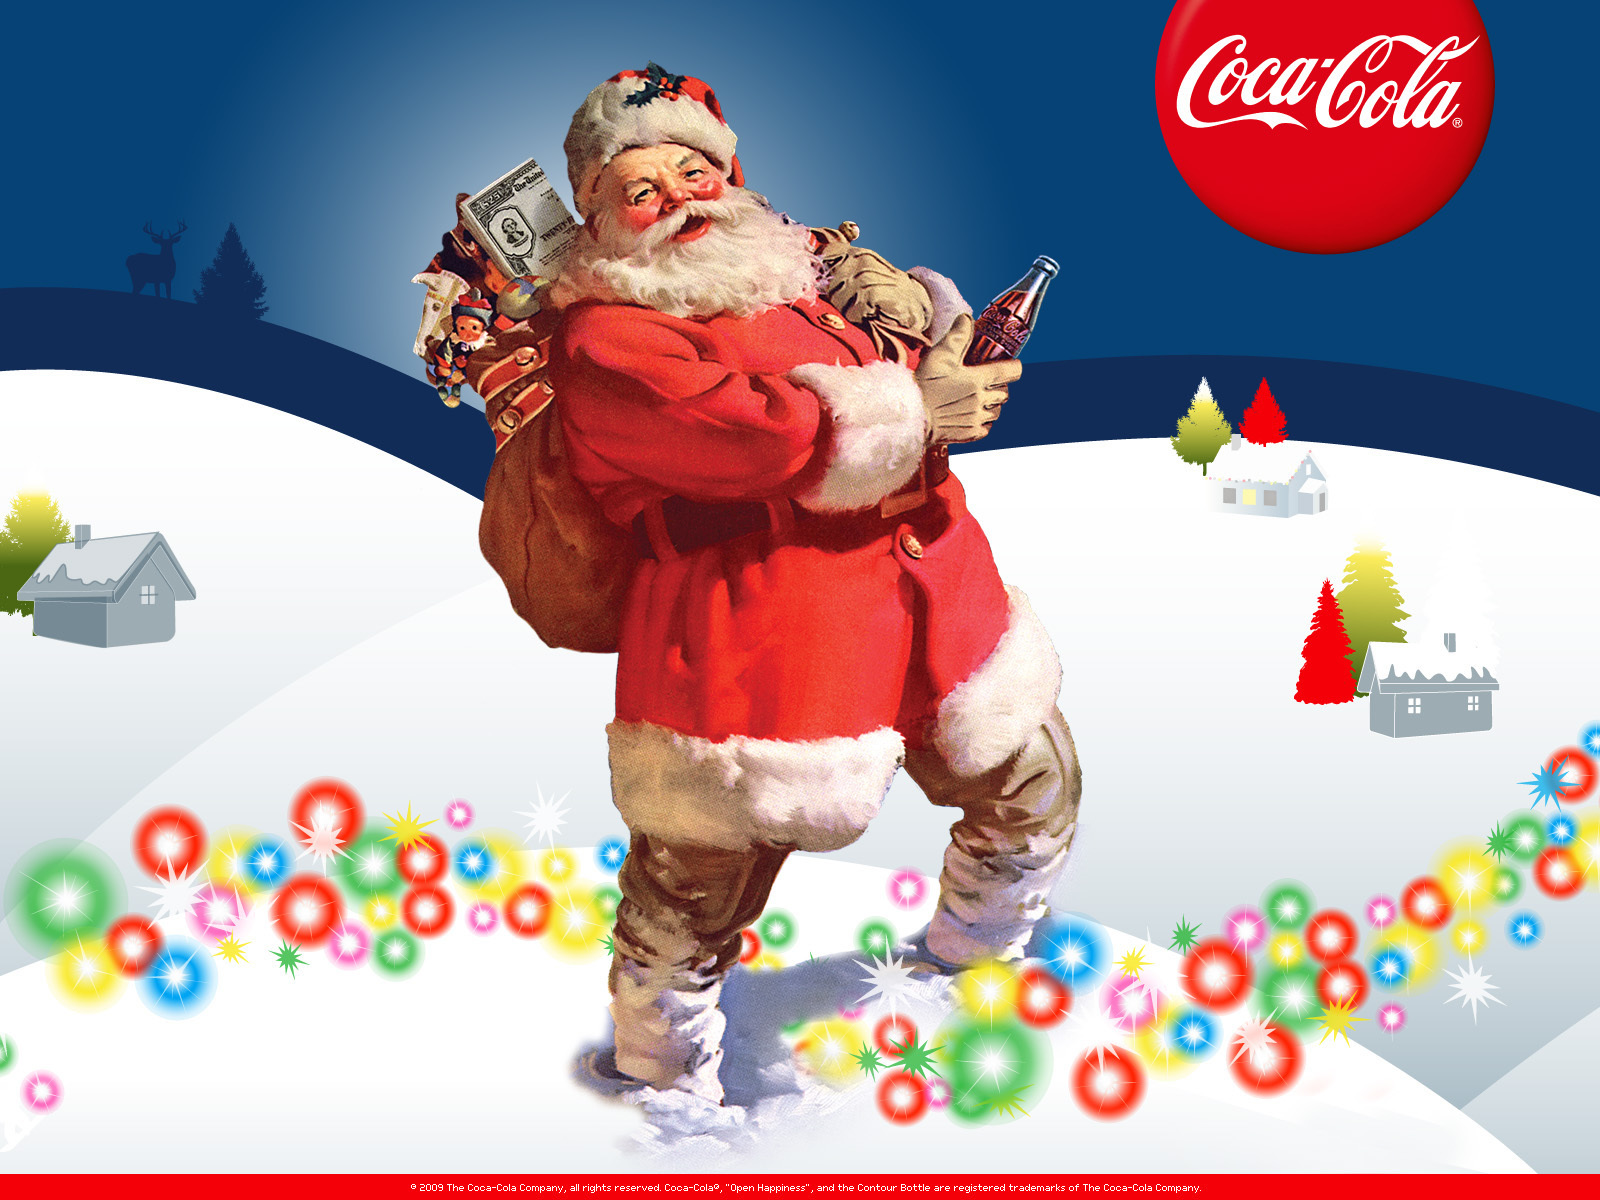 Clearly And coca cola santa claus are